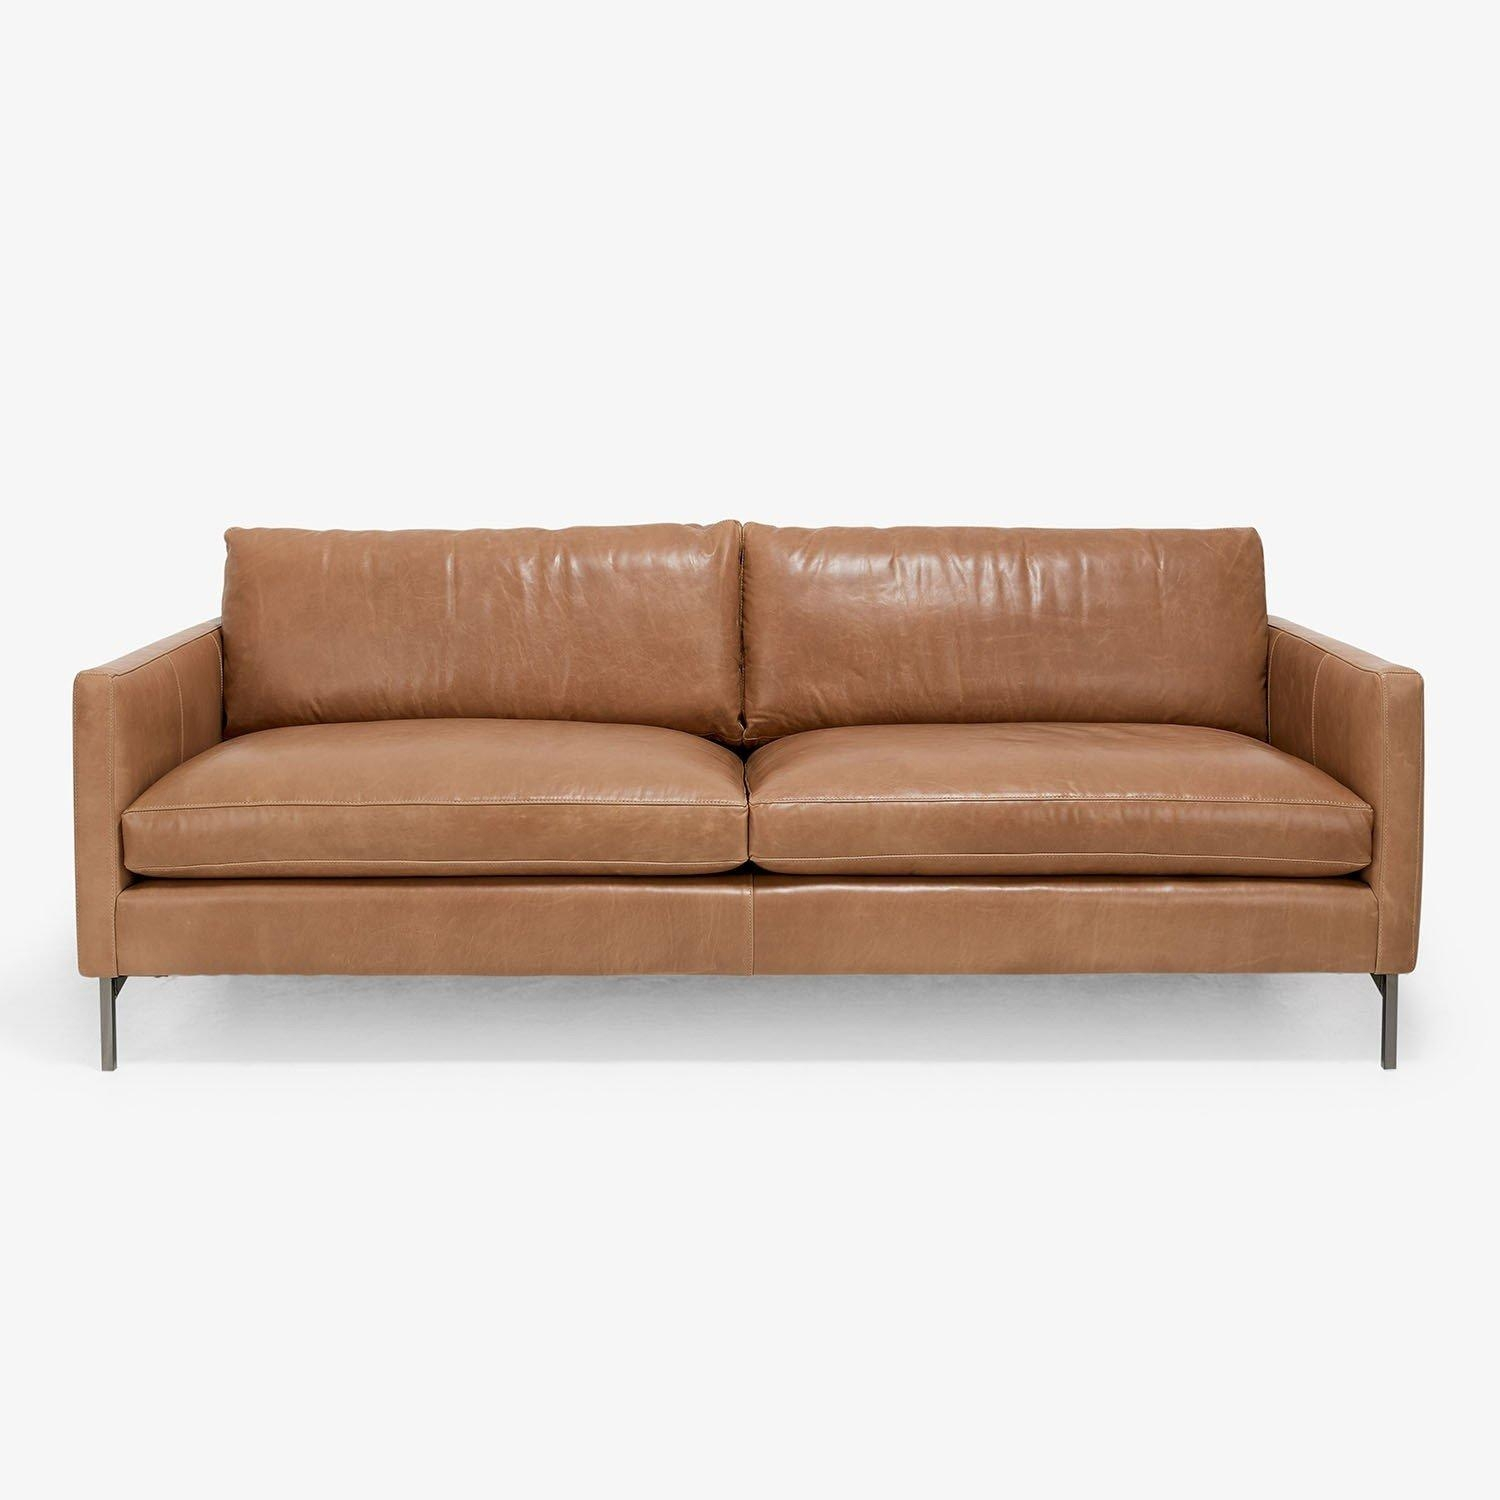 Sofas, Couches, And Loveseats For Your Nyc Apartment At Abc Home For Cobble Hill Sofas (Image 18 of 20)